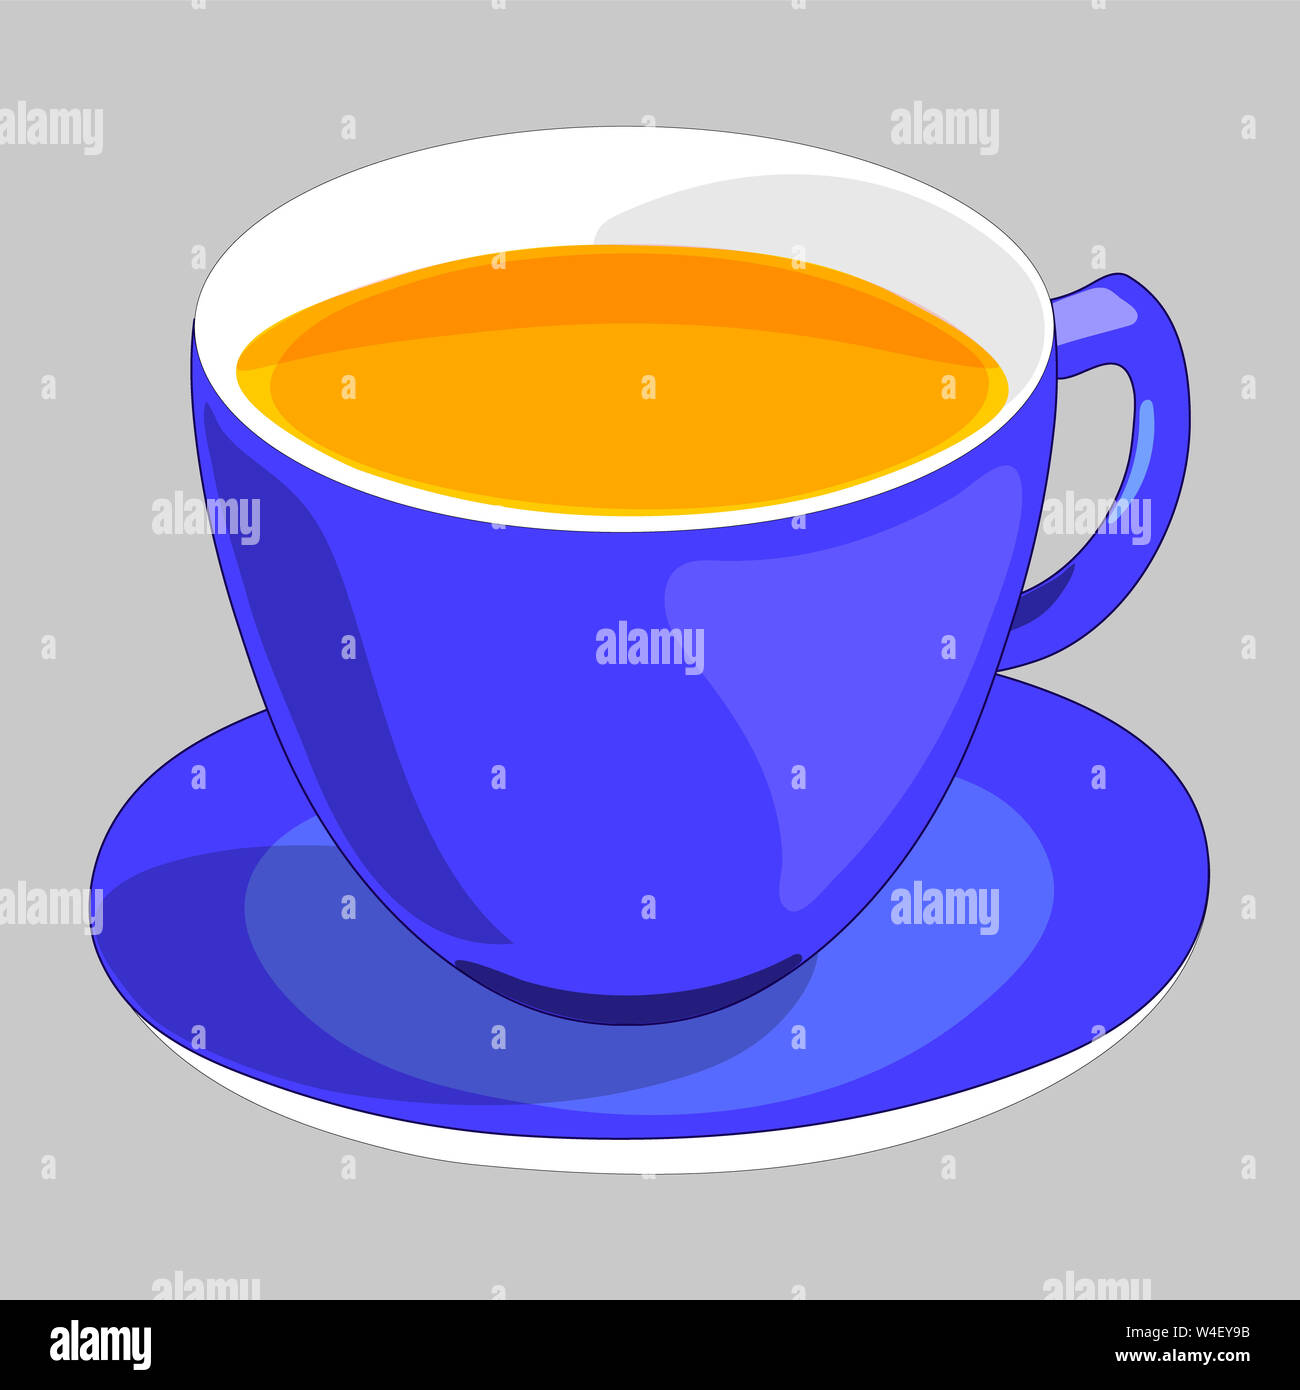 Flat Drawing Of A Cup And Saucer The Blue Mug Is Filled With Tea Tea Party Isolated Grey Illustration Stock Photo Alamy